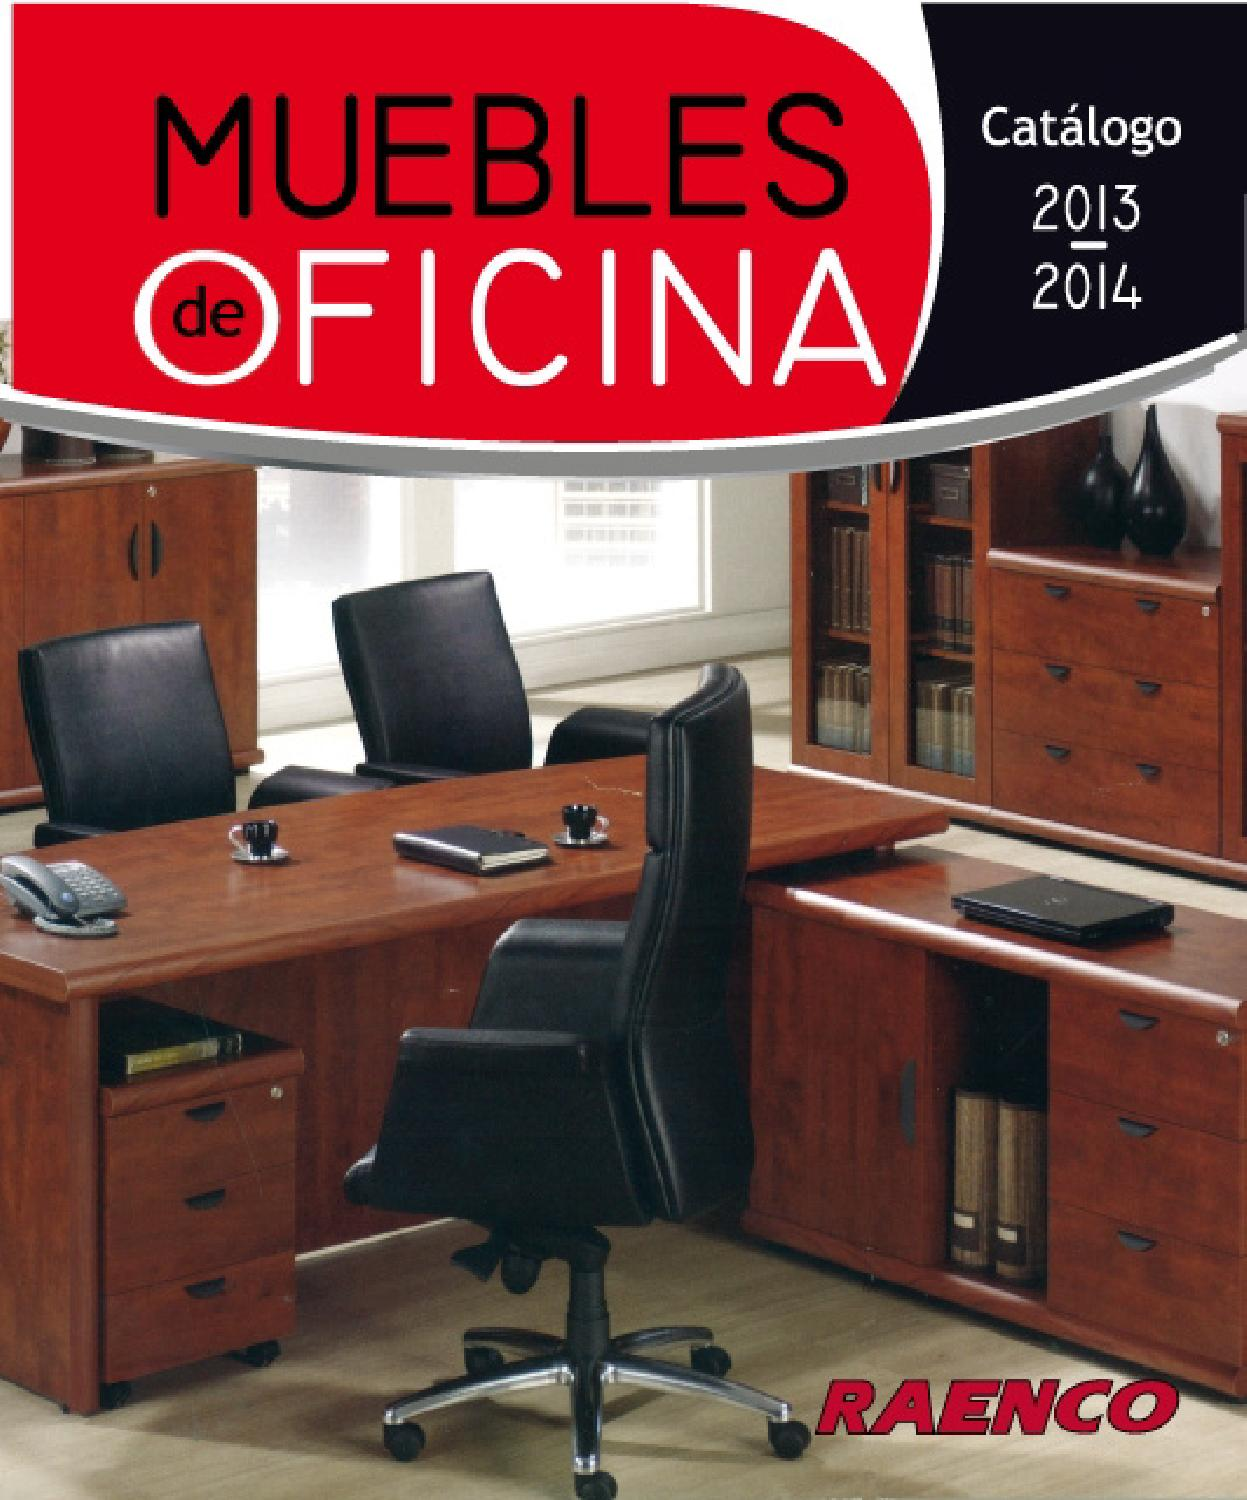 Cat logo raenco oficina by interiores estilo issuu for Muebles de oficina jujuy